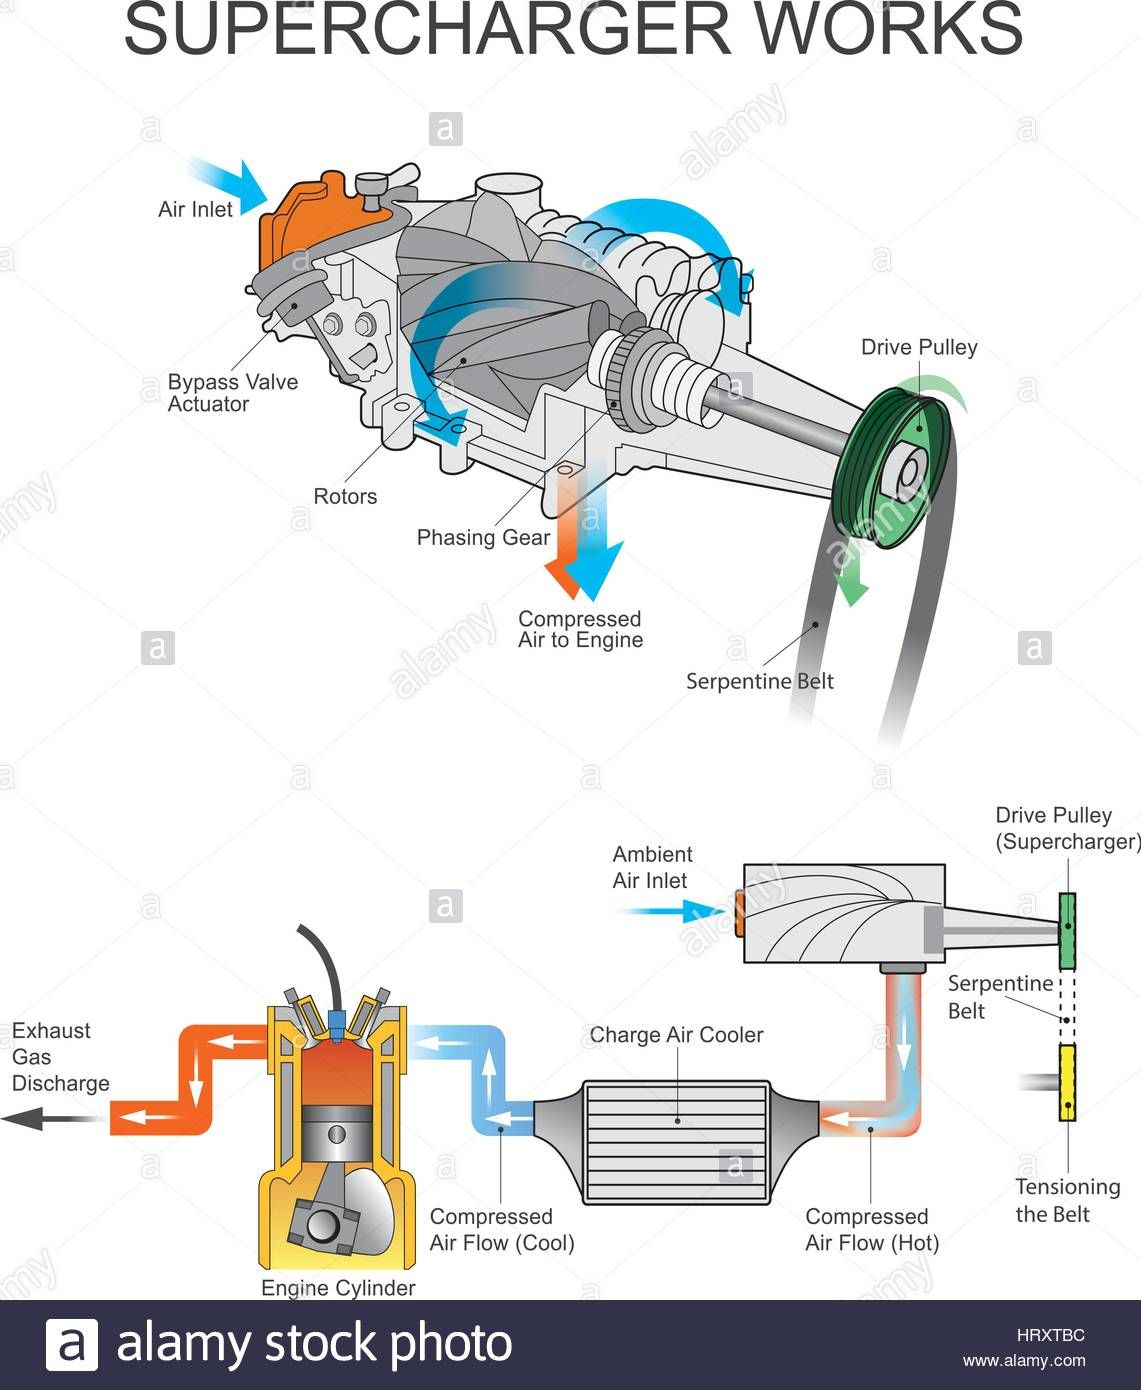 Download this stock vector: A supercharger is an air compressor that  increases the pressure or density of air supplied to an internal combustion  engine.